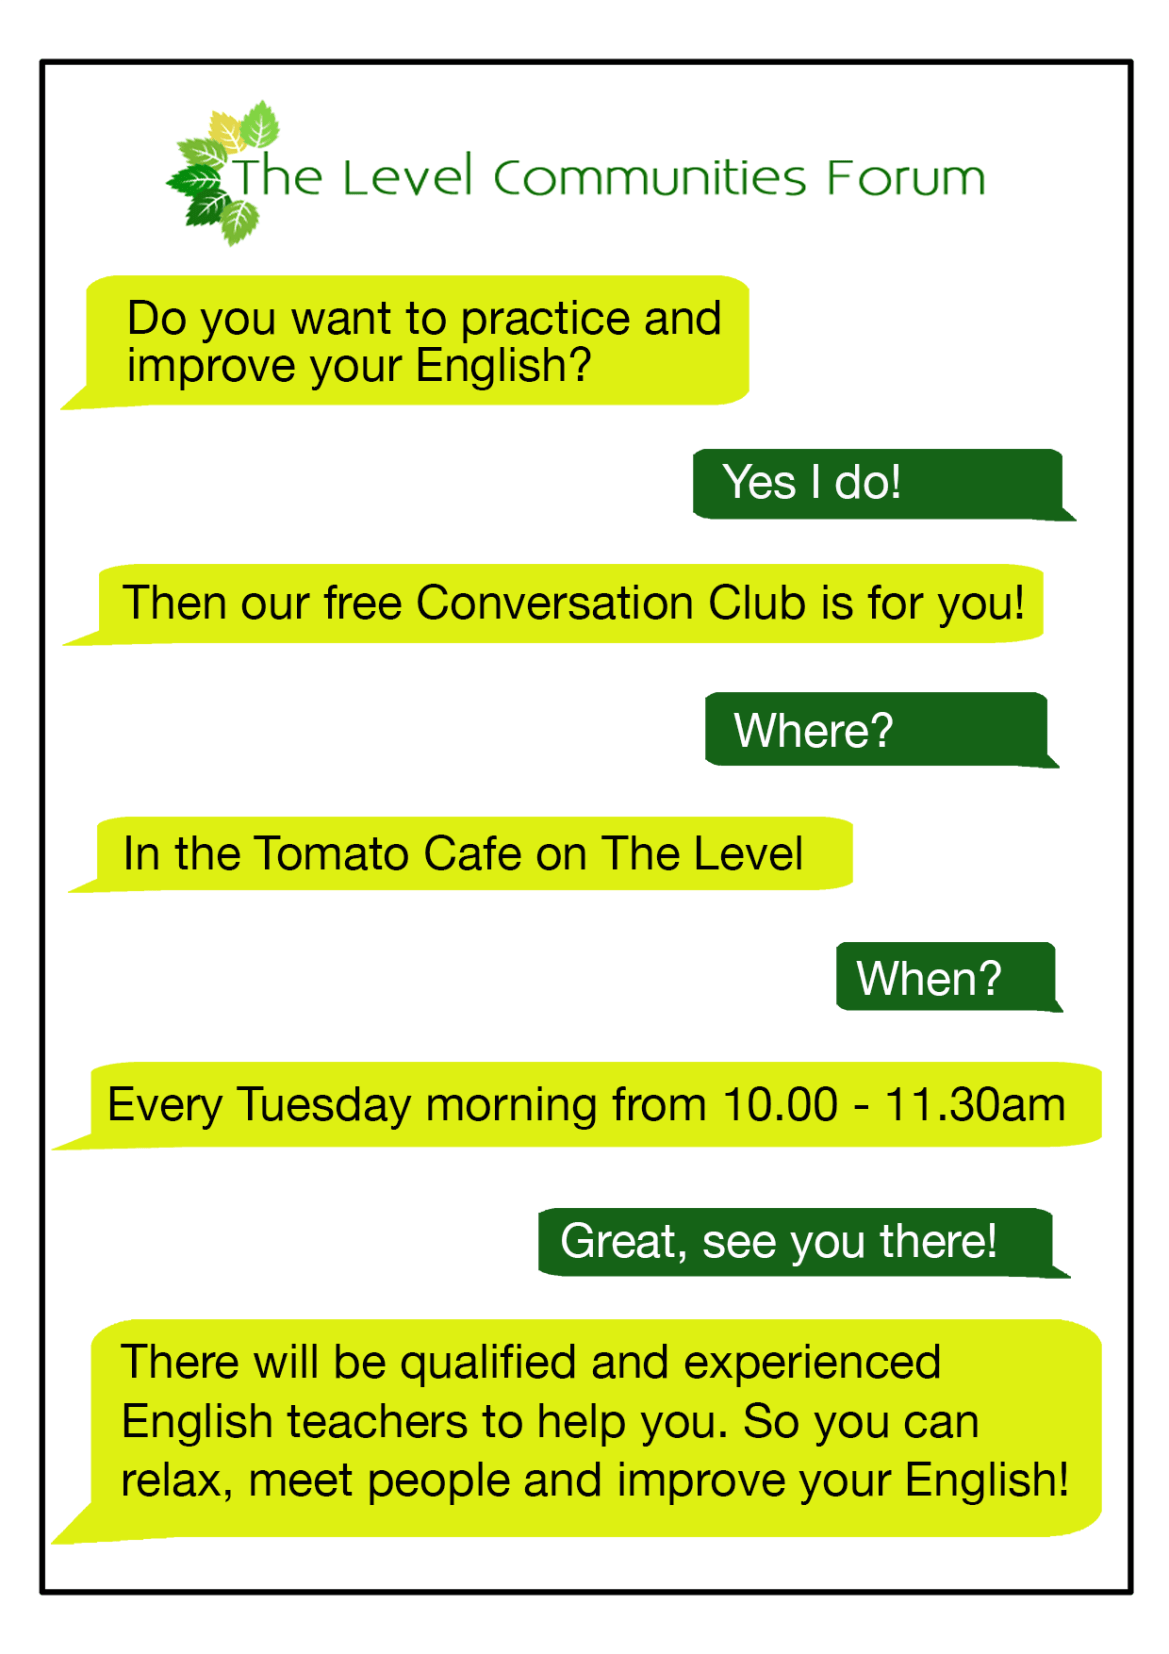 The Level Communities Forum is running a regular Conversation Club